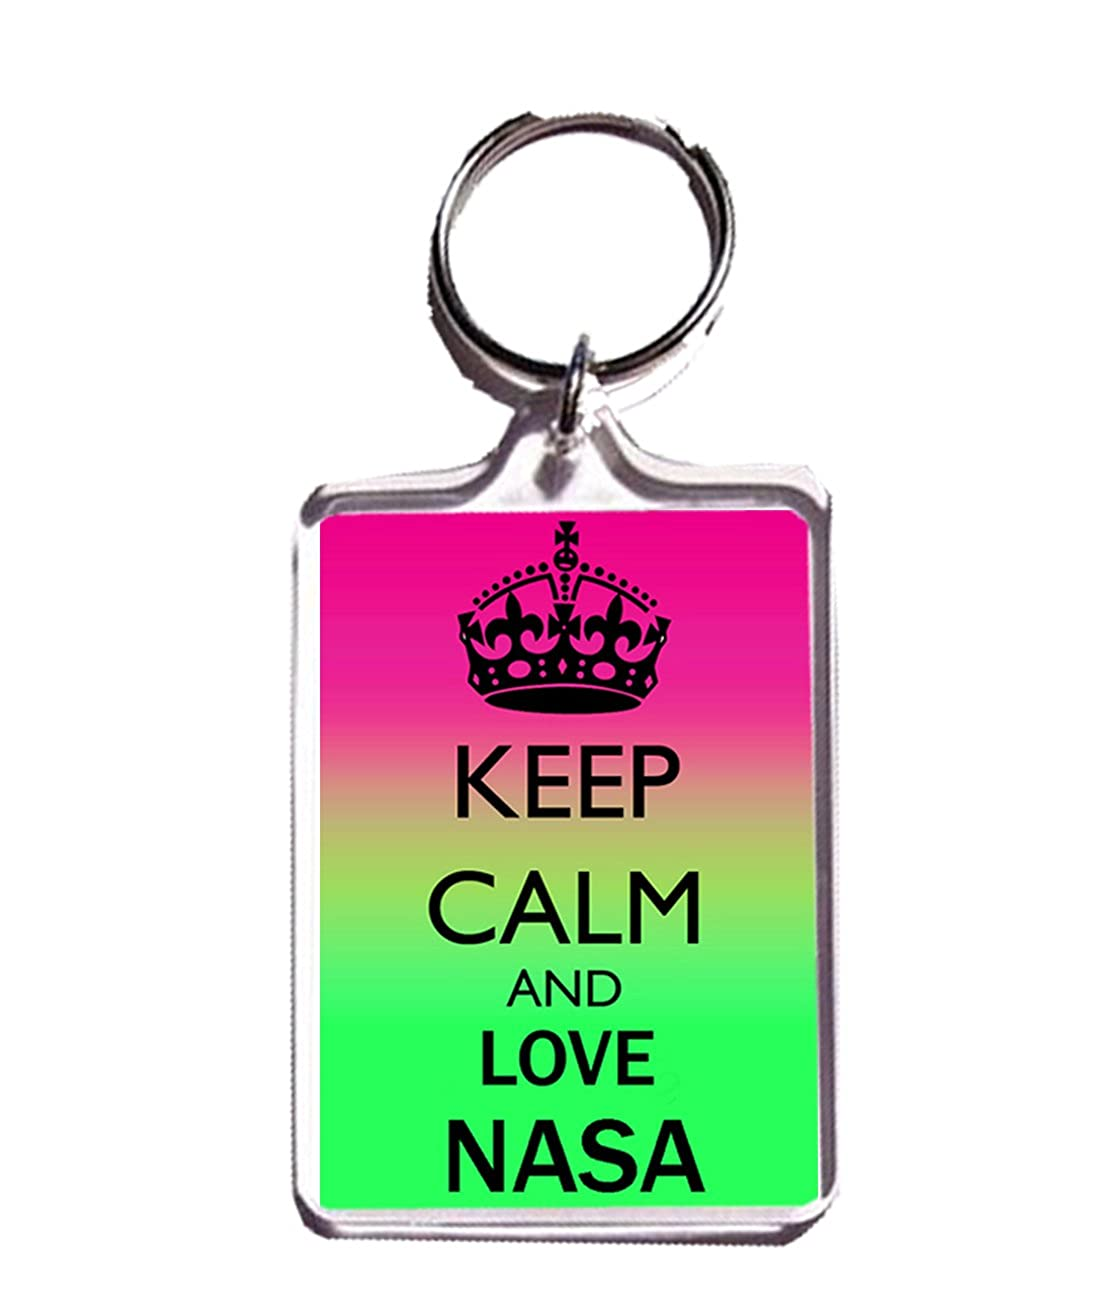 KEEP CALM AND LOVE NASA LLAVERO: Amazon.es: Ropa y accesorios